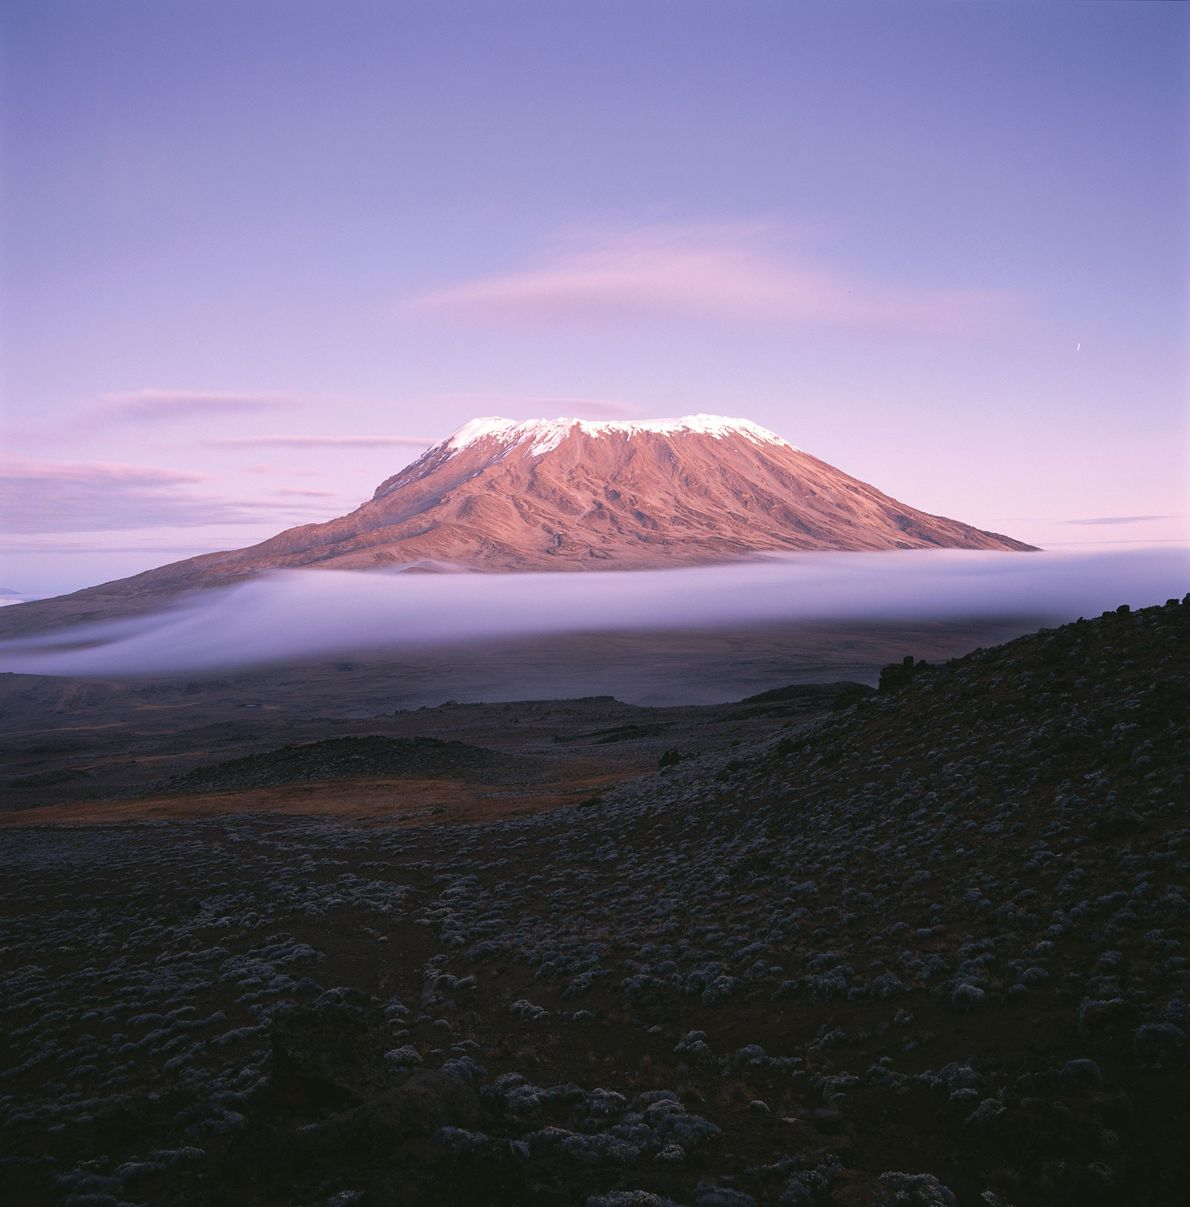 Mount Kilimanjaro contains three volcanic cones—Kibo, Mawenzi, and Shira—and is the highest mountain in Africa.